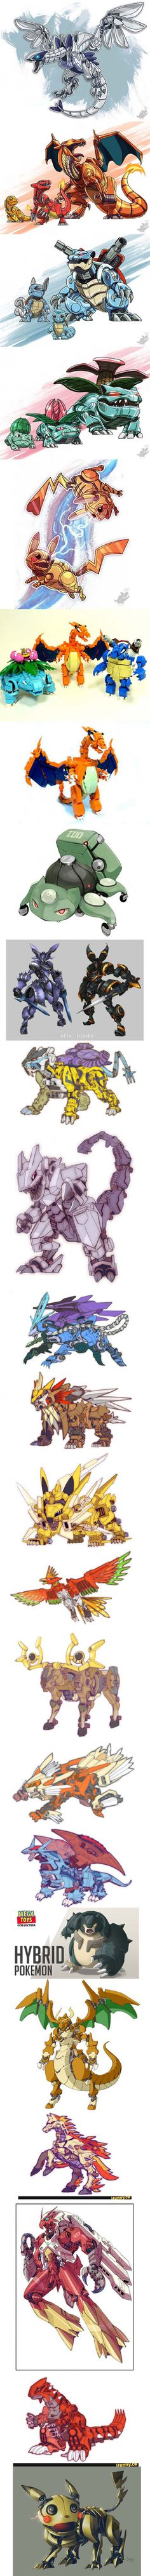 Pokemon as mecha